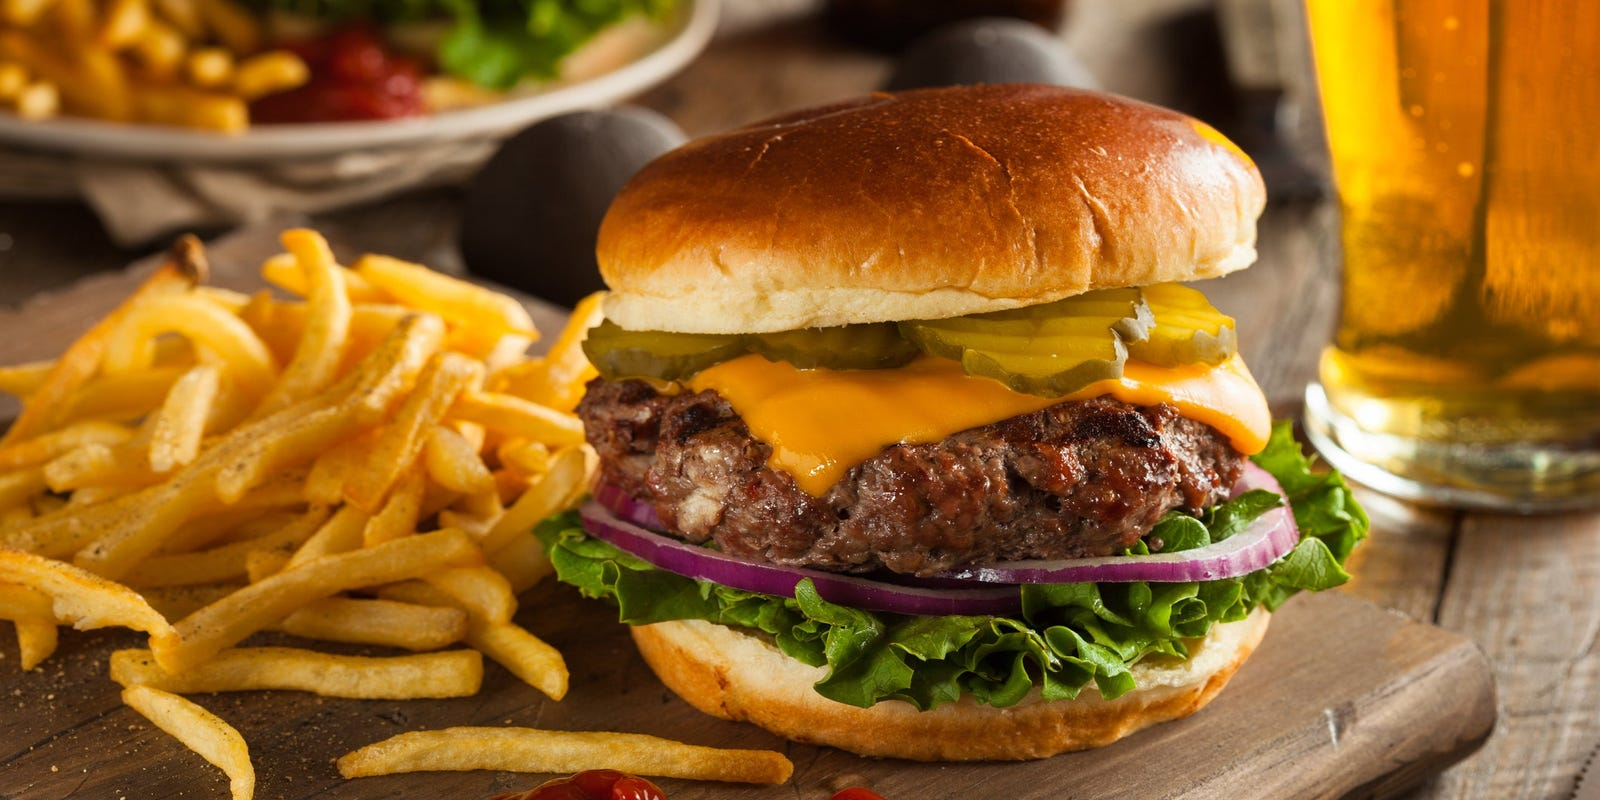 National Cheeseburger Day 2020: Find deals and free food Friday at McDonald's, Applebee's and more